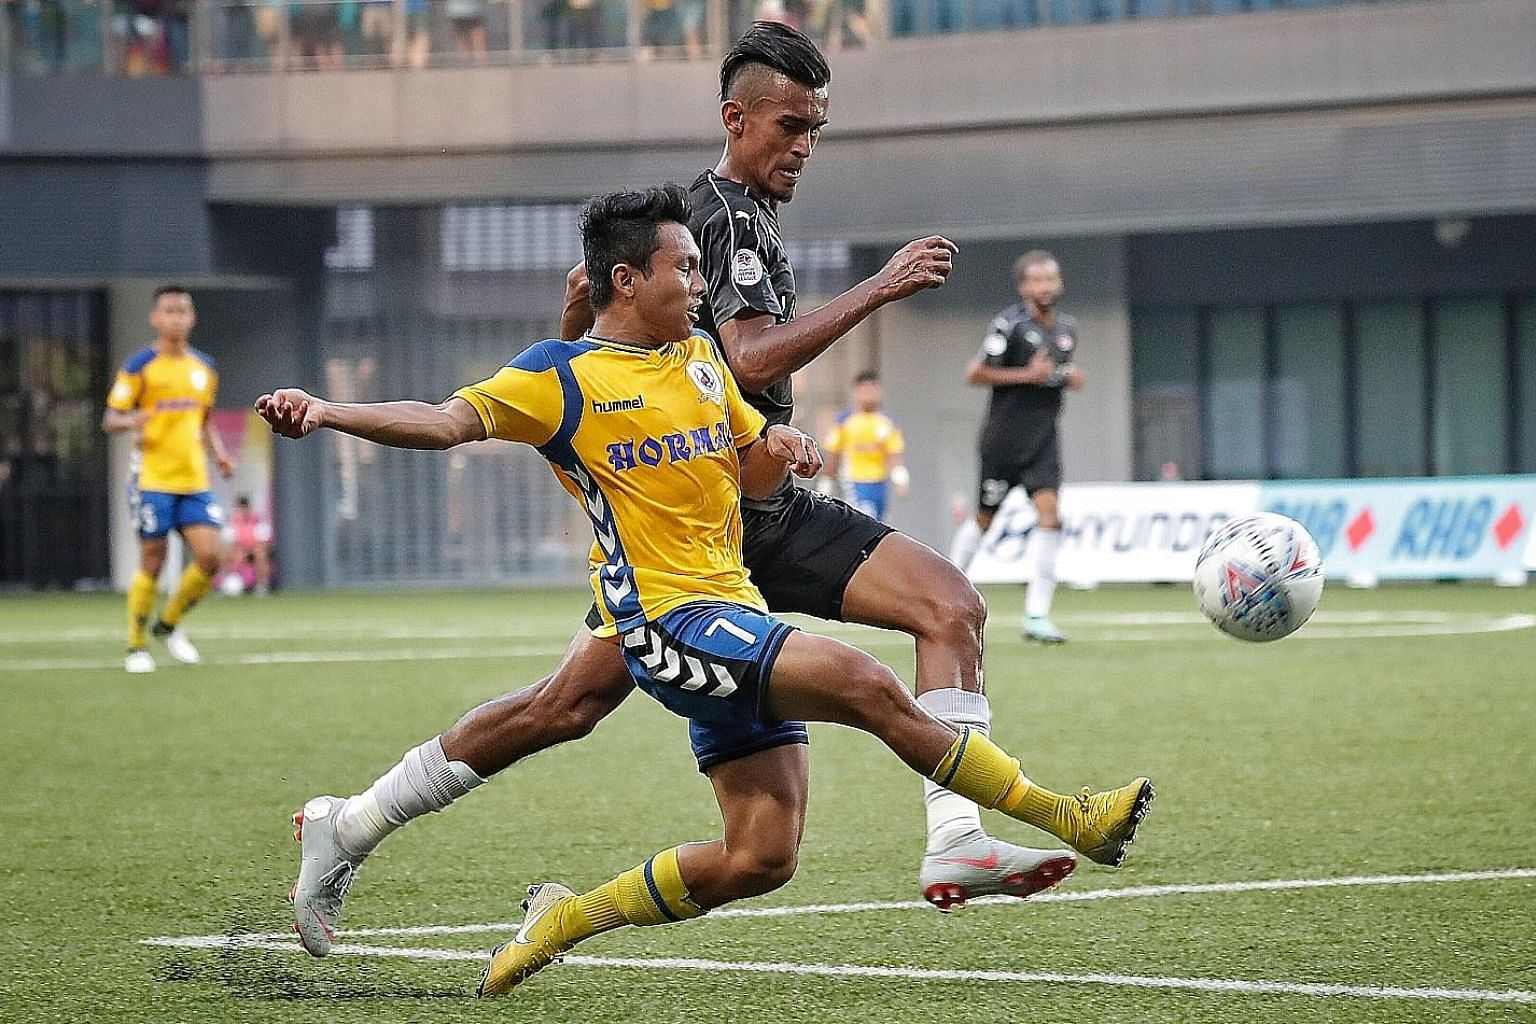 Tampines Rovers' Zulfadhmi Suzliman getting in a cross past Home United's Shakir Hamzah, now with Kedah, during last season's Singapore Premier League match at Our Tampines Hub.